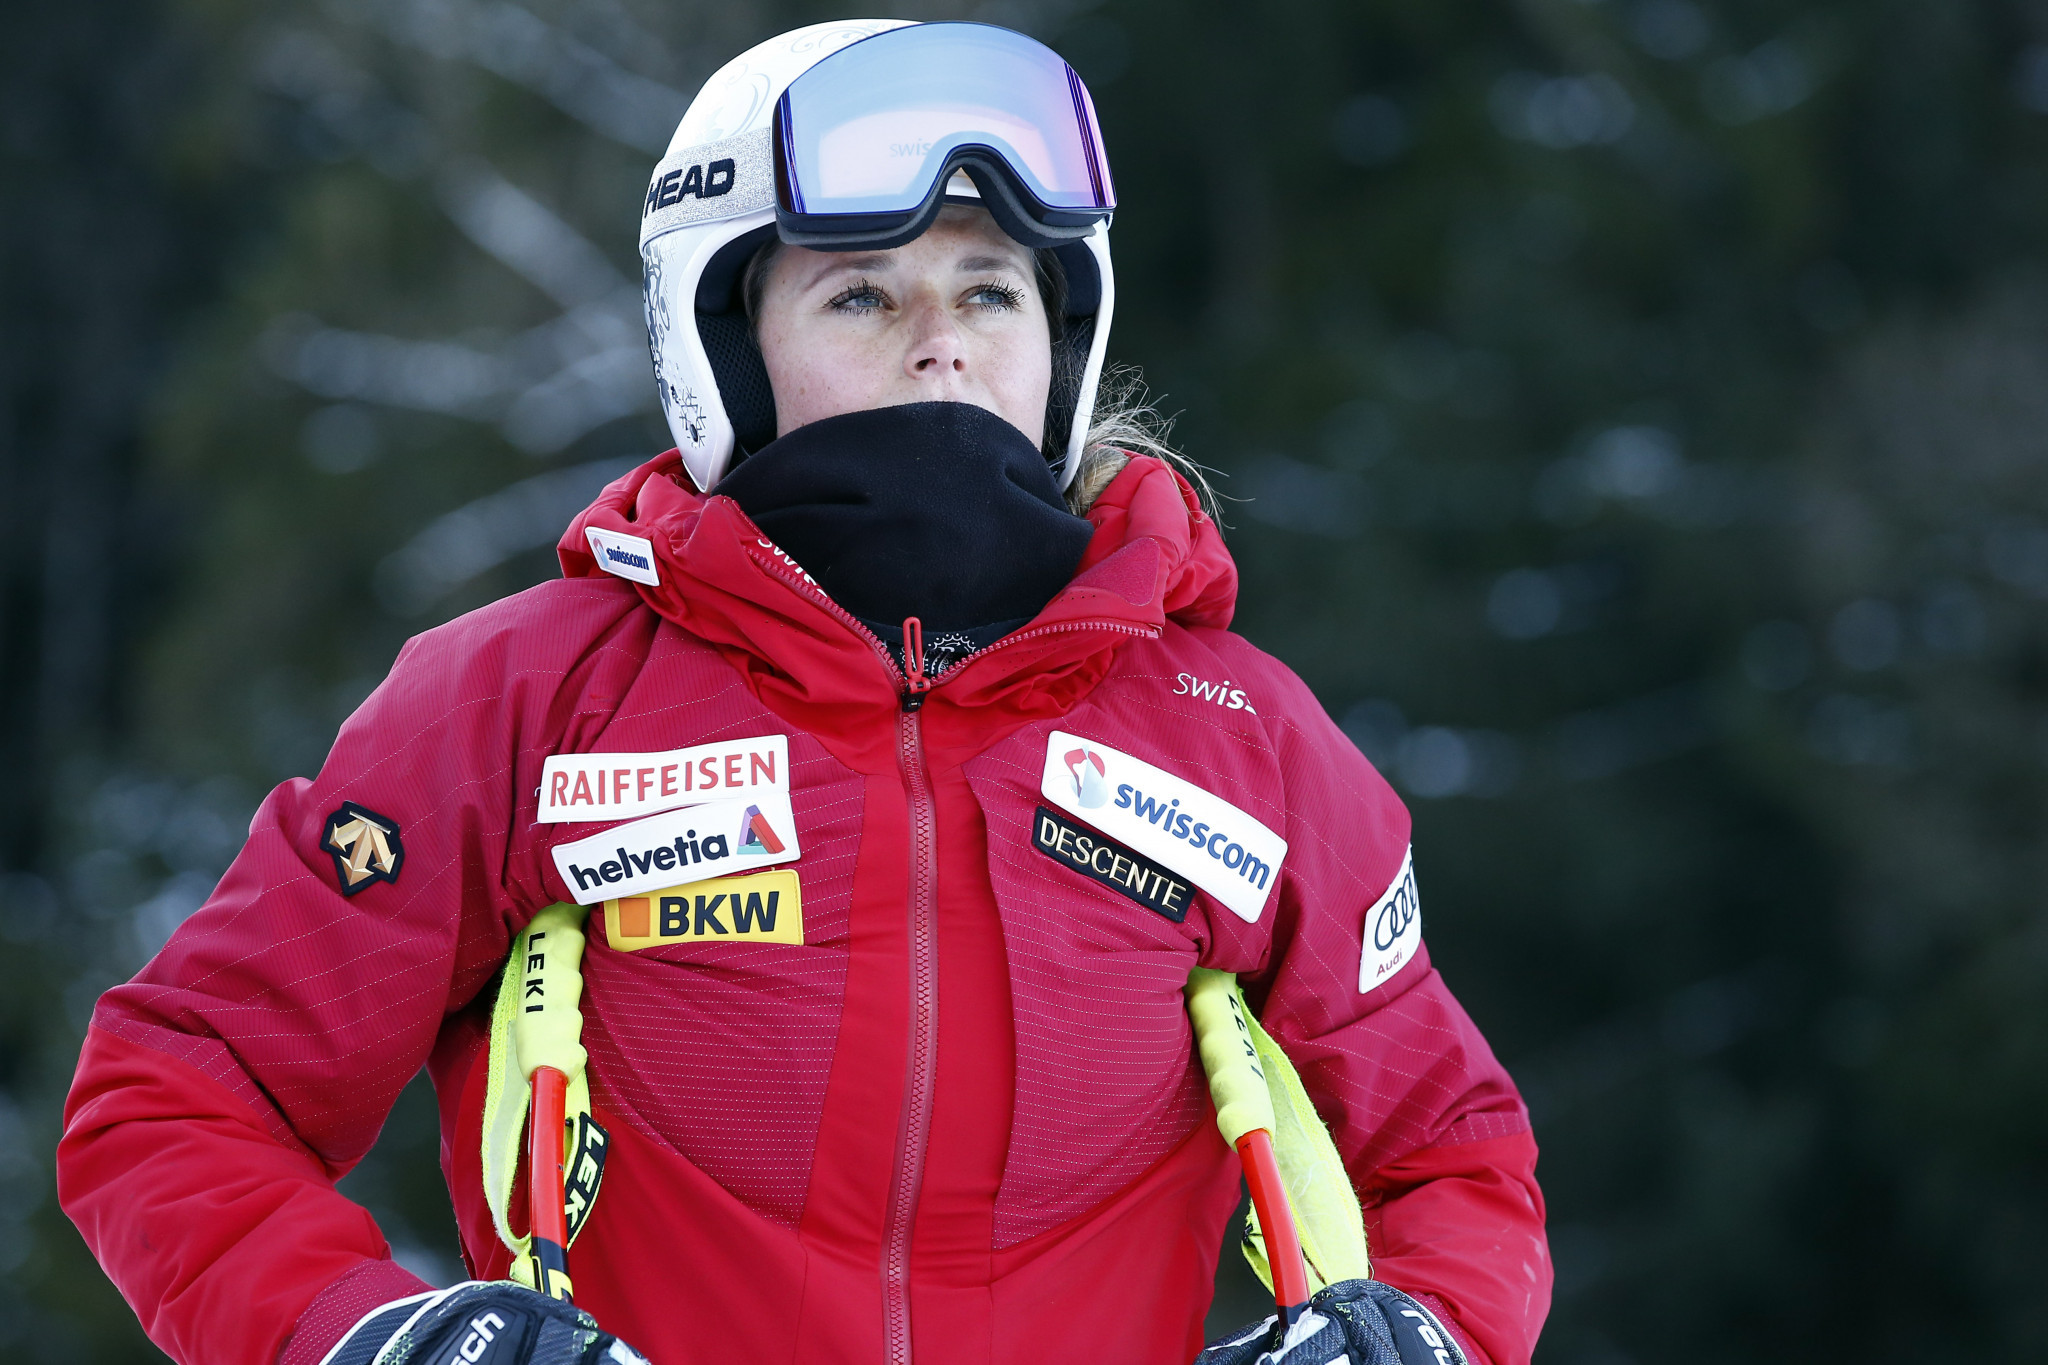 Suter set to extend World Cup downhill lead in Shiffrin's absence